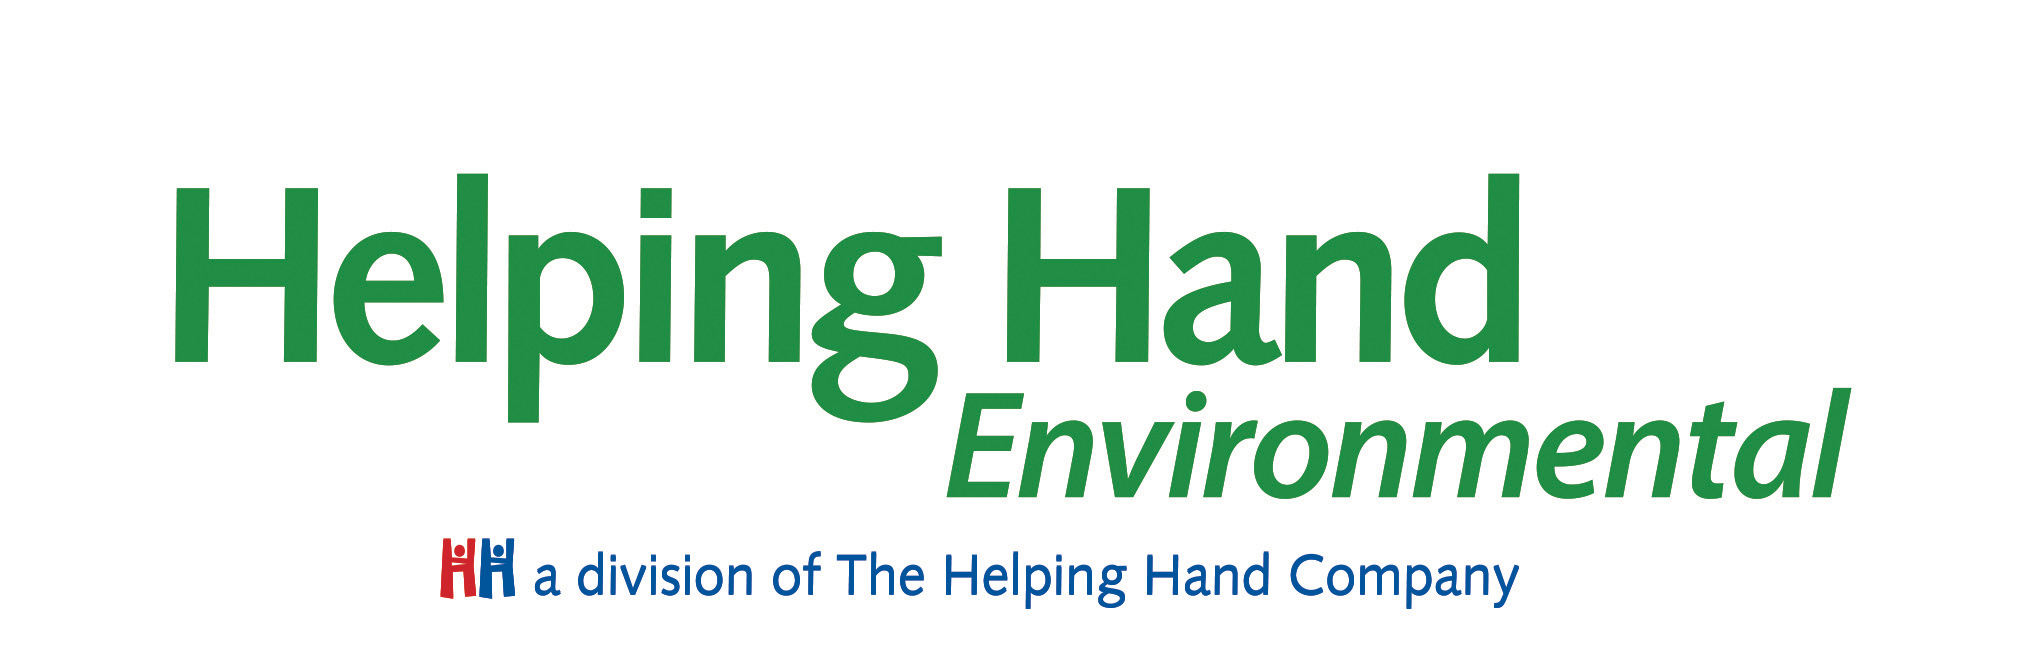 Helping Hand Environmental